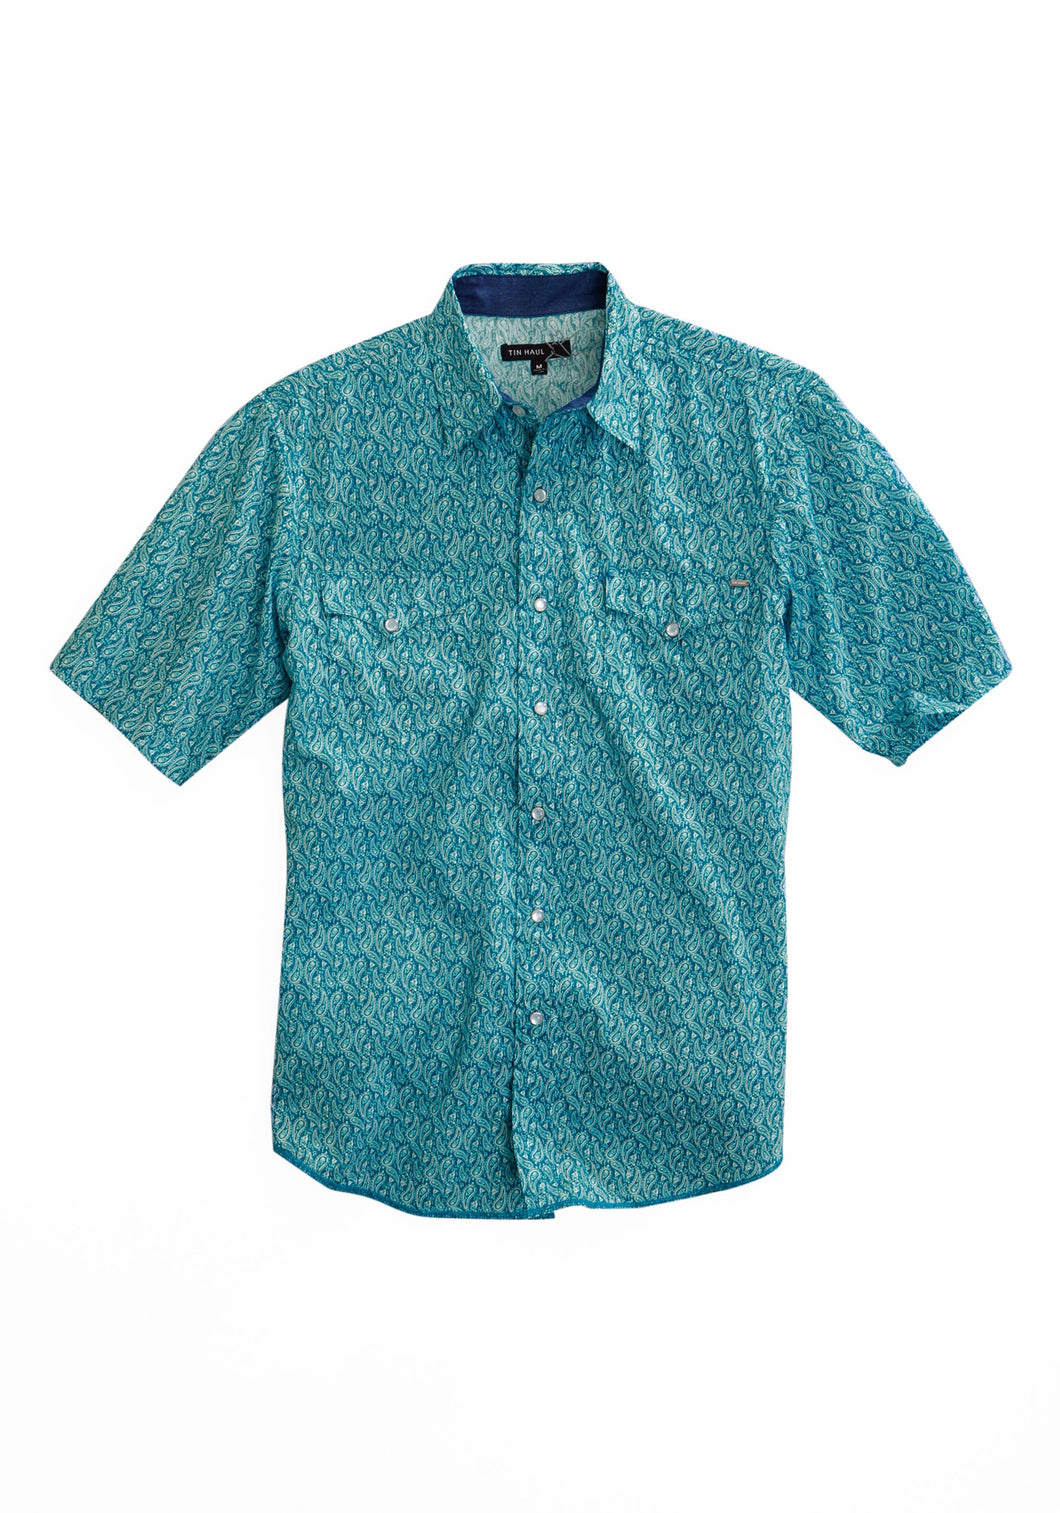 Tin Haul Collection Tinhaul Mens Short Sleeve 1797 Mod Paisley